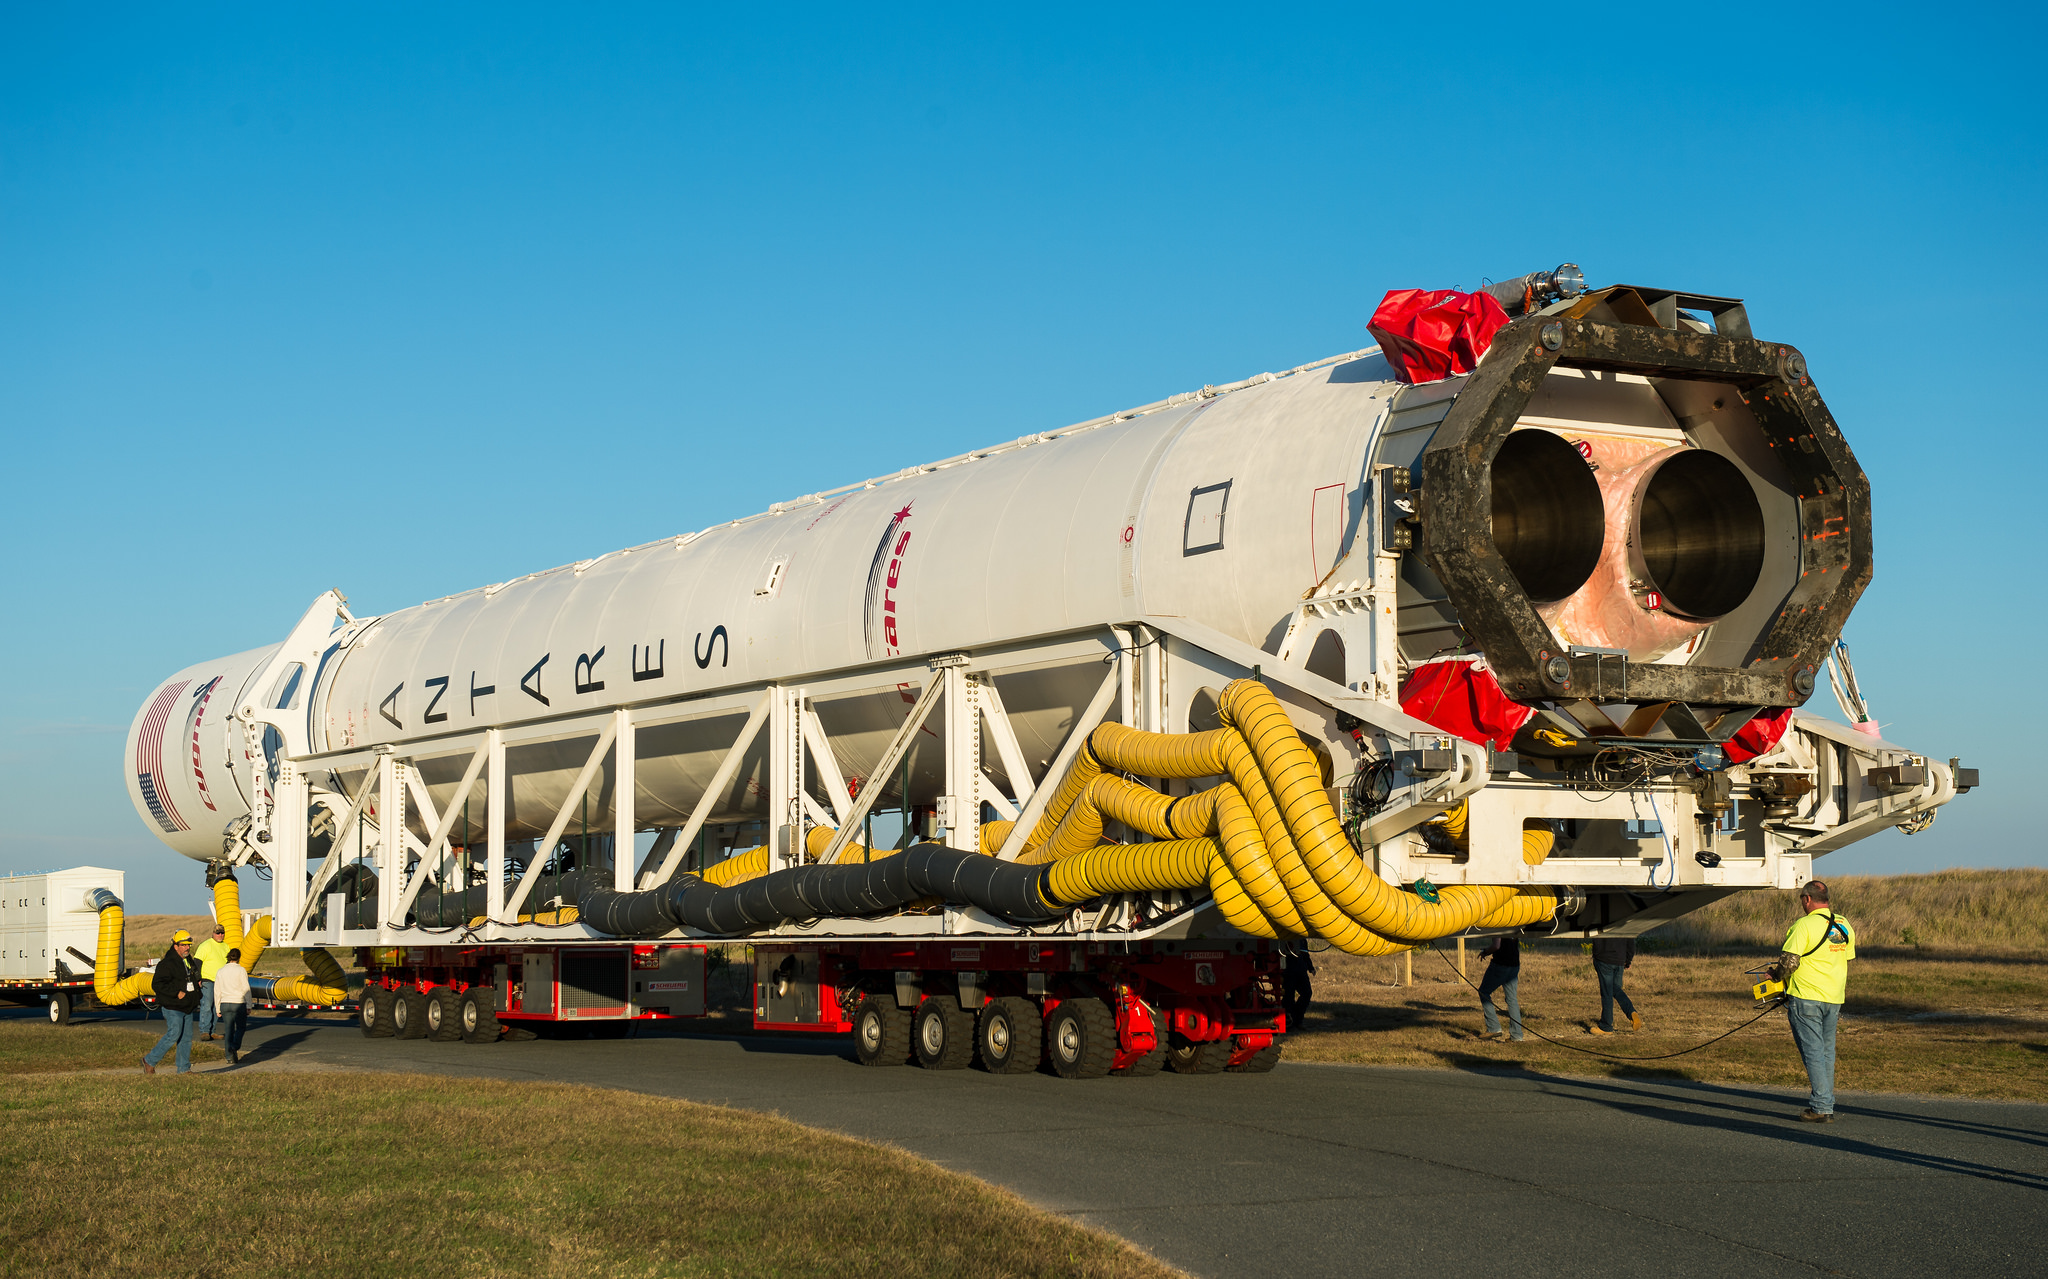 The Antares rocket's AJ26 engines are seen during the booster's rollout to the launch pad at Wallops Island, Va. Credit: NASA/Joel Kowsky